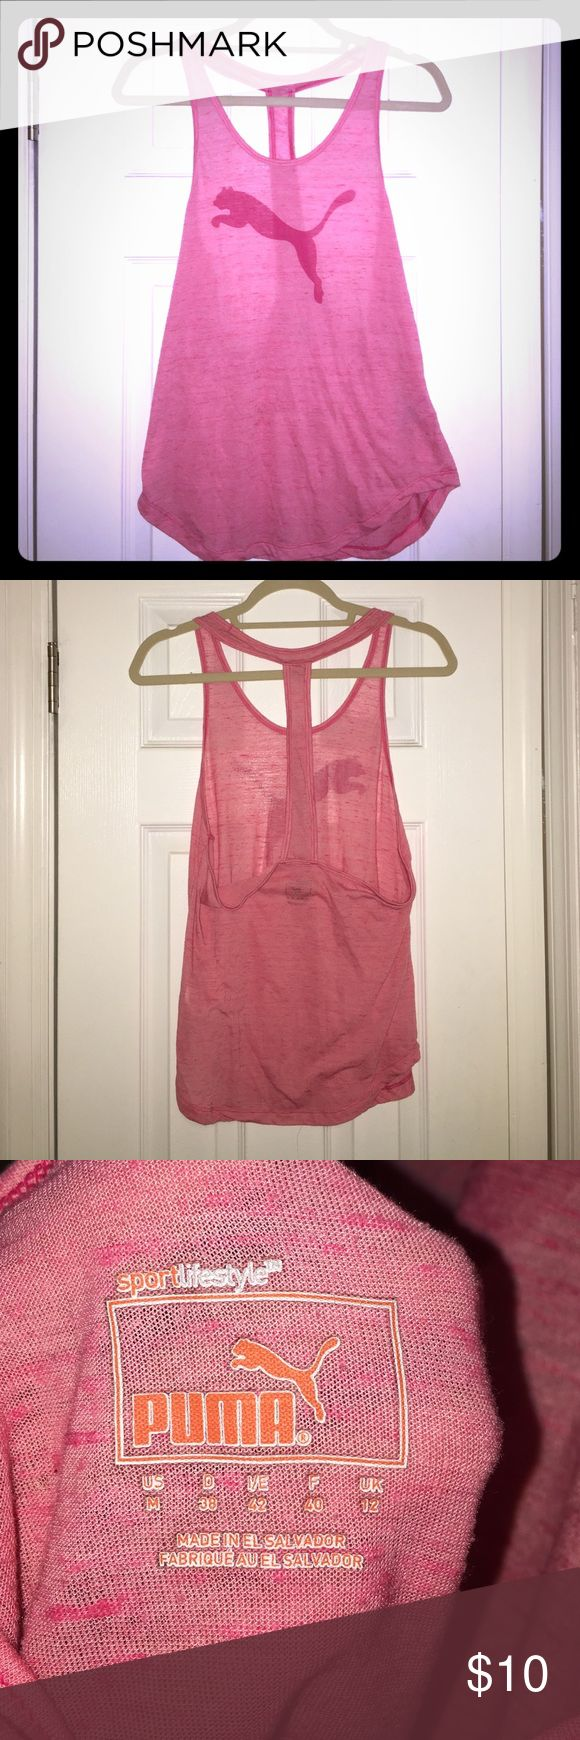 Puma Sport Lifestyle Workout Tank Racerback Pink Puma Sport Lifestyle Workout Tank Racerback Pink. Low back looks great with any sports bra. Worn only a few times. Check out our closet and make it a bundle - 2 items = 15% off! Everything must go no reasonable offer on ANY item (even high end) denied. Thanks for shopping 😁 Puma Tops Tank Tops